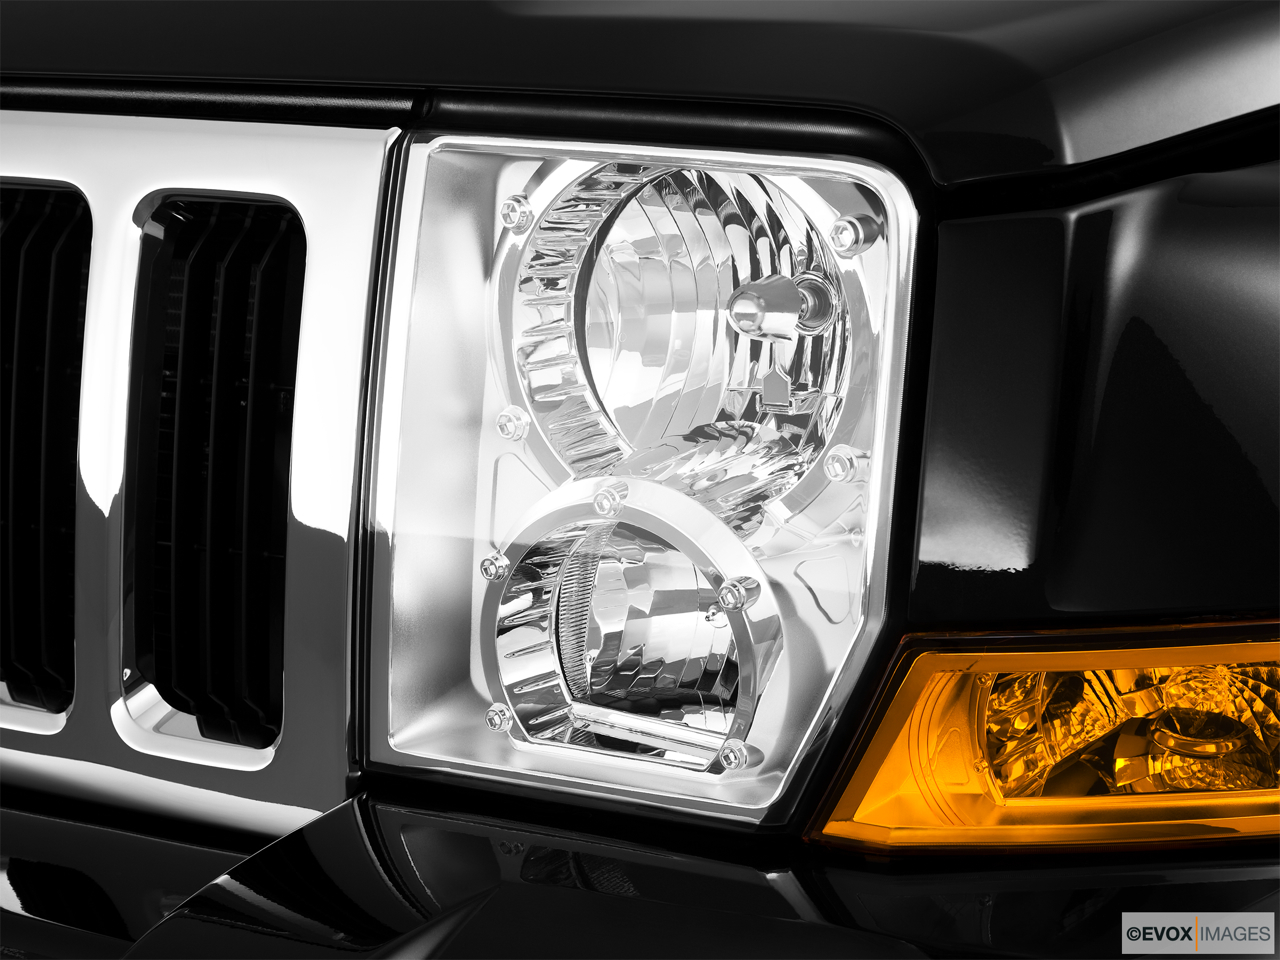 2010 Jeep Commander Limited Drivers Side Headlight.